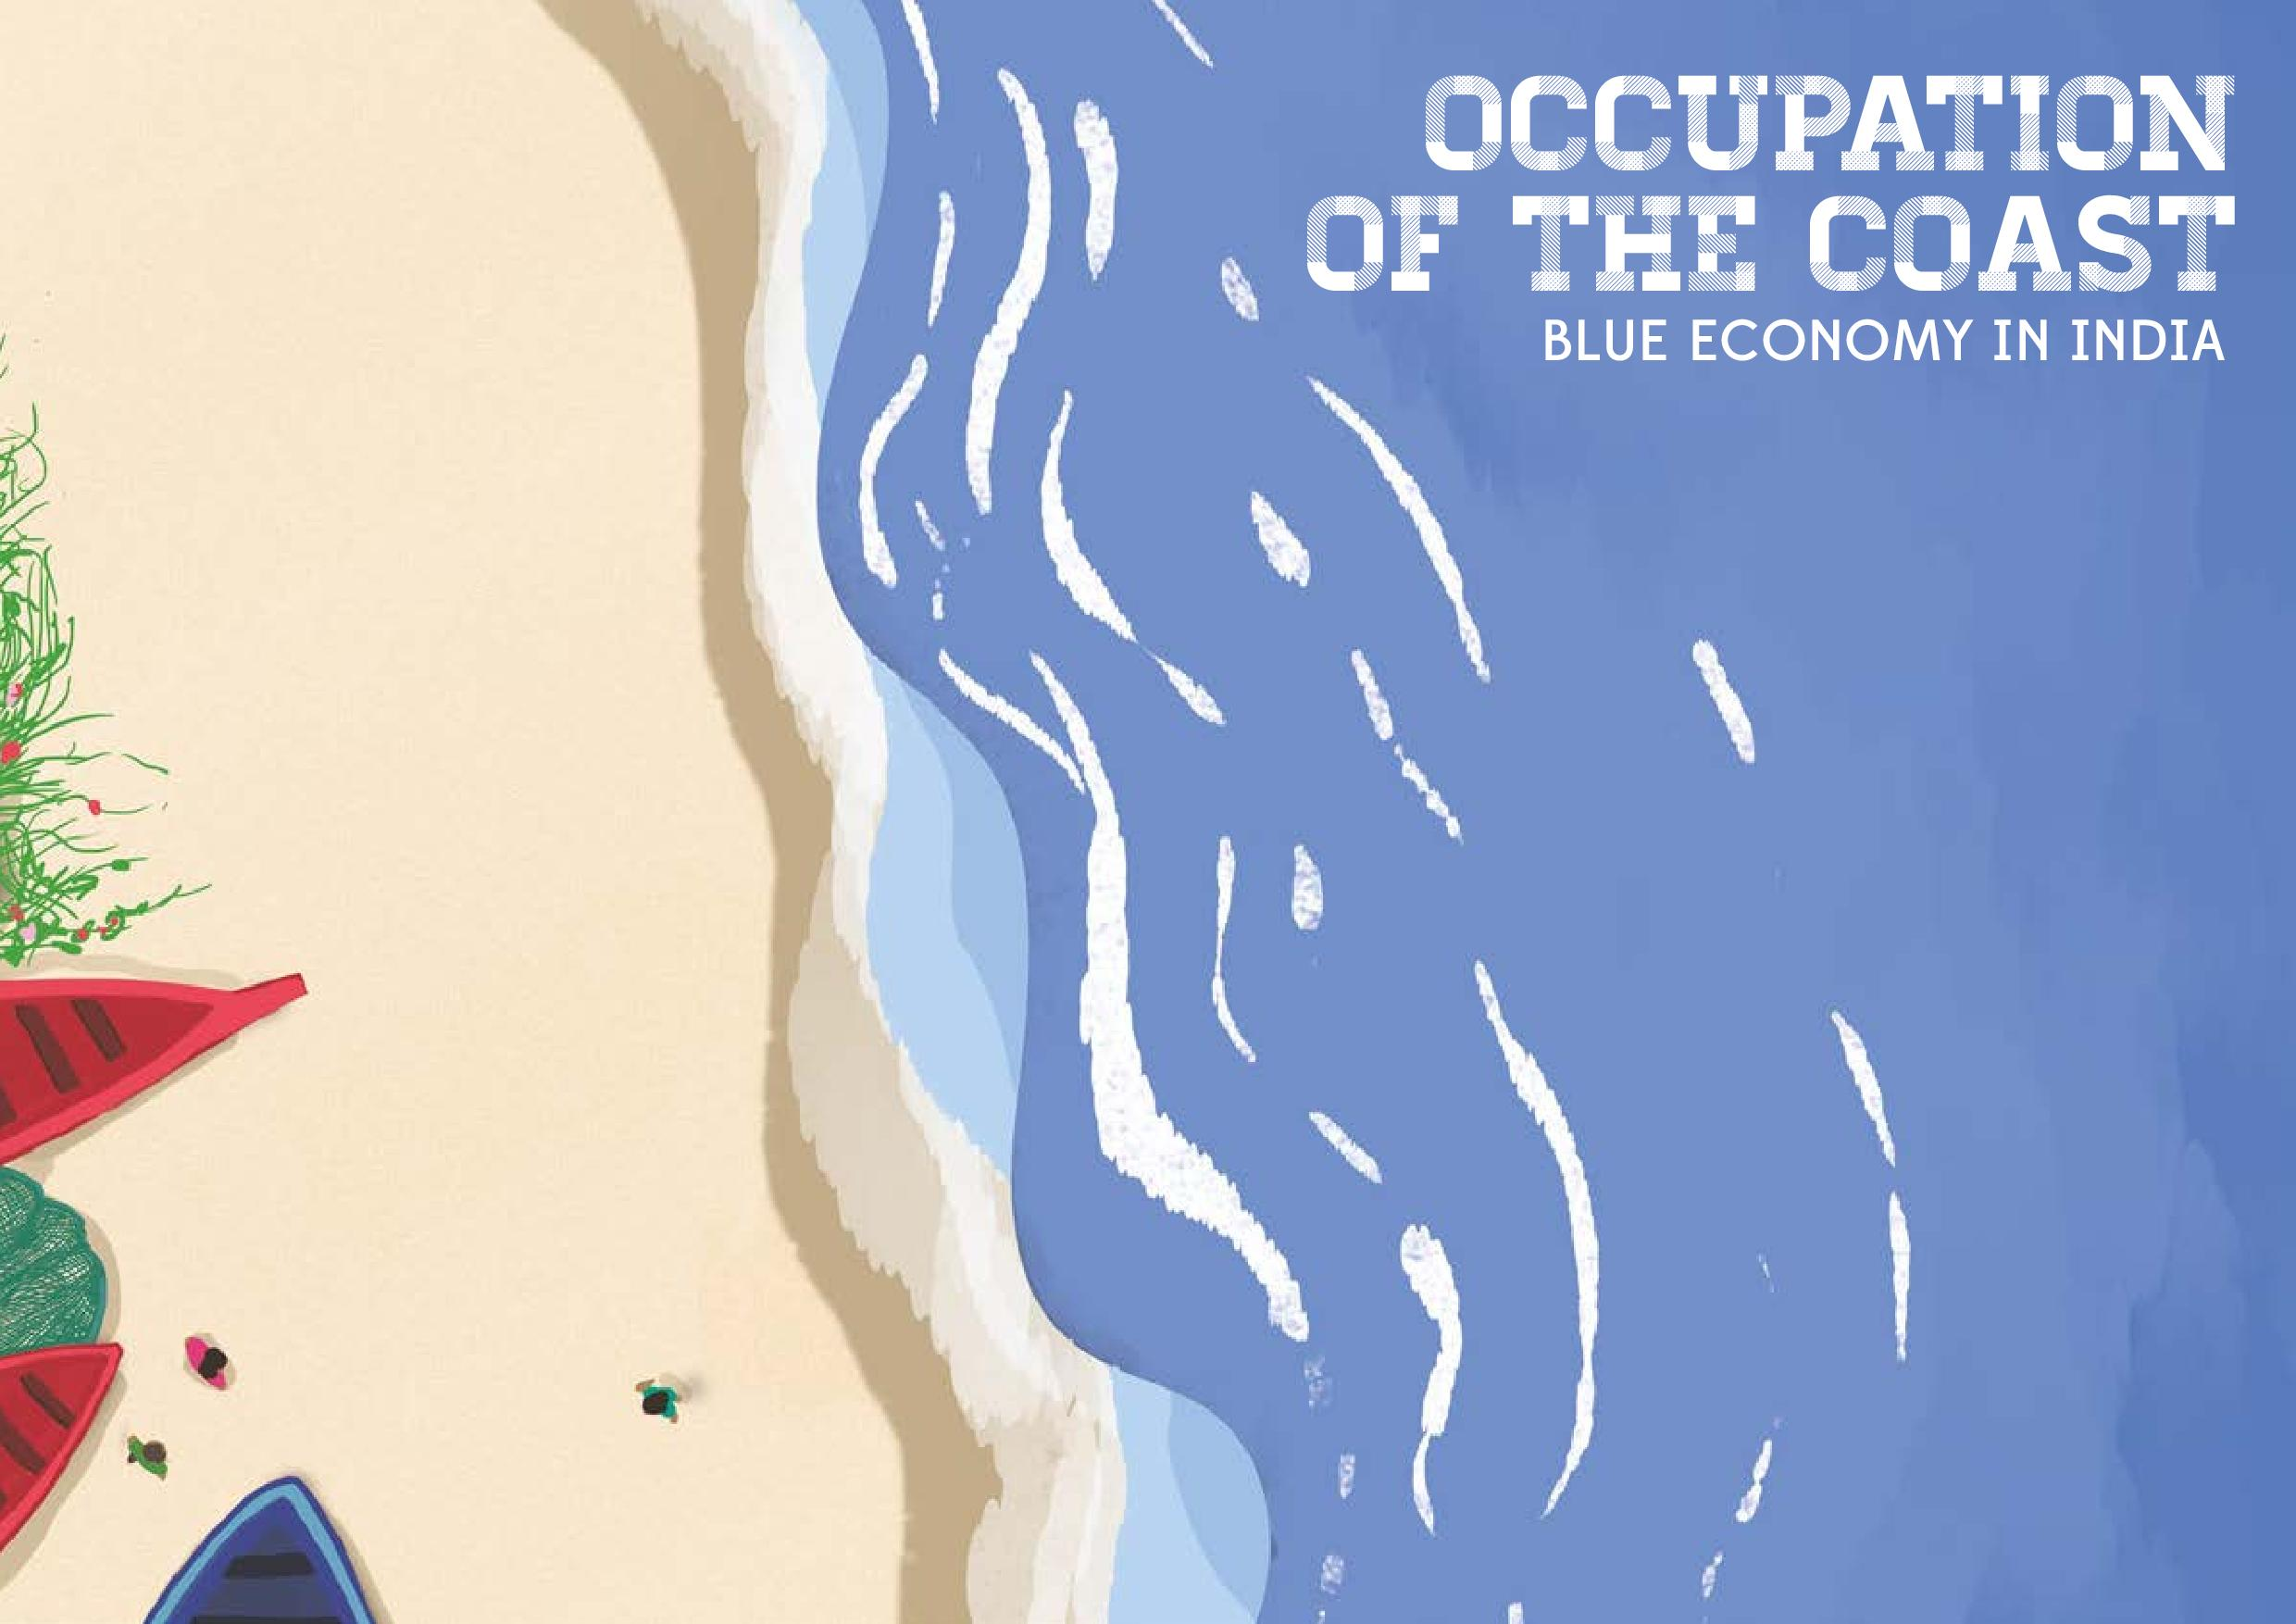 Occupation+of+the+Coast_TRC+2017 coverpage-page-001.jpg